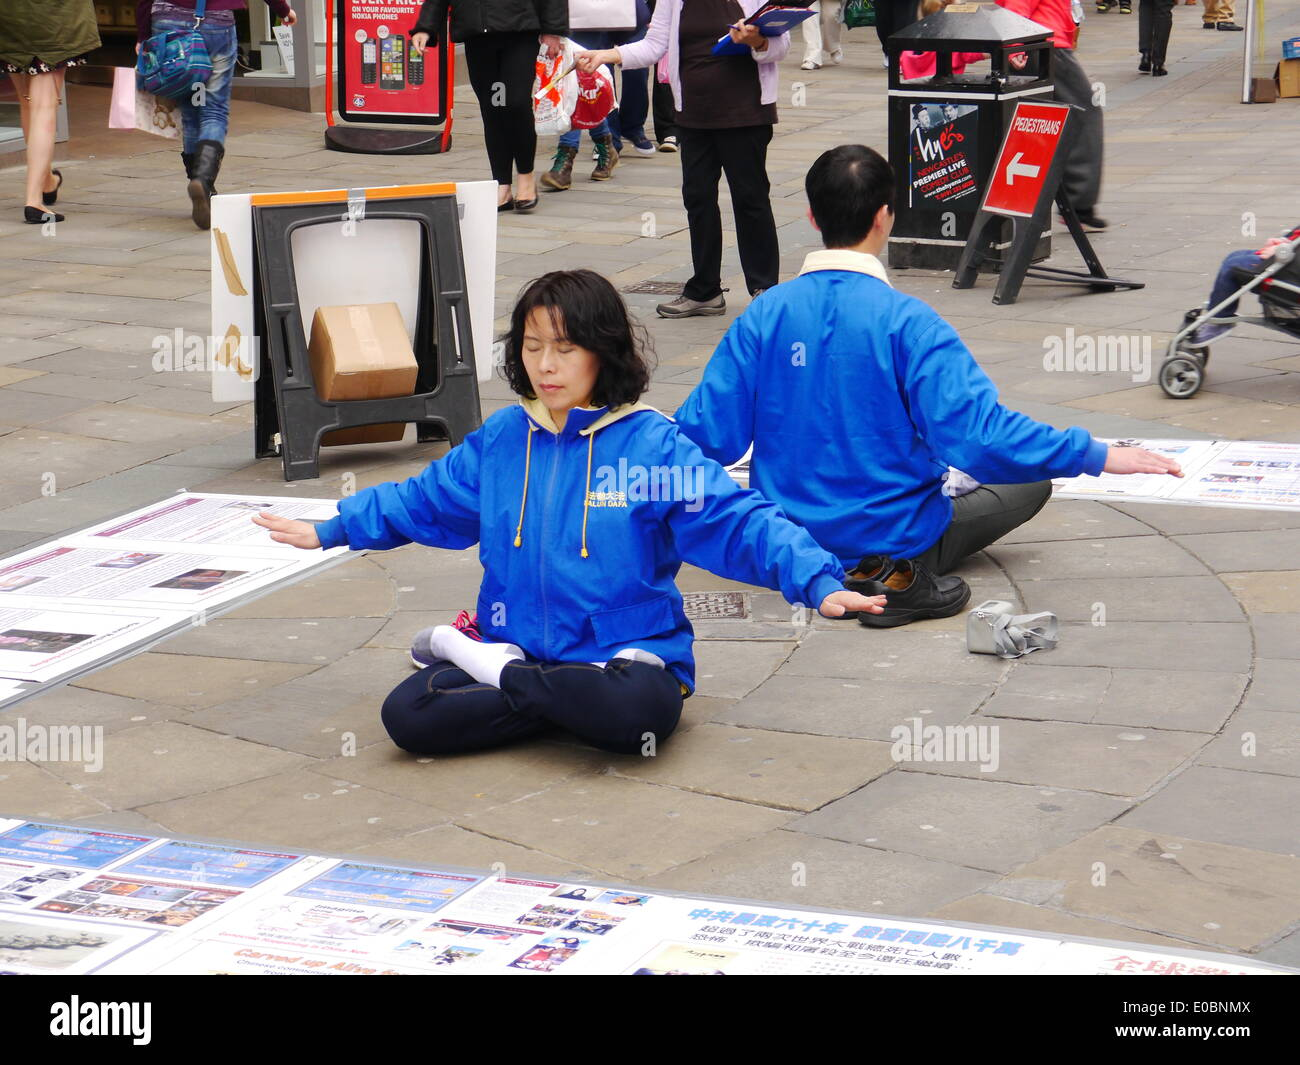 Newcastle upon Tyne, UK. 8th. May, 2014.  Supporters stage peaceful meditation protest against persecution of Falun Gong by the Chinese government. Credit:  Victor W. Adams/Alamy Live News - Stock Image